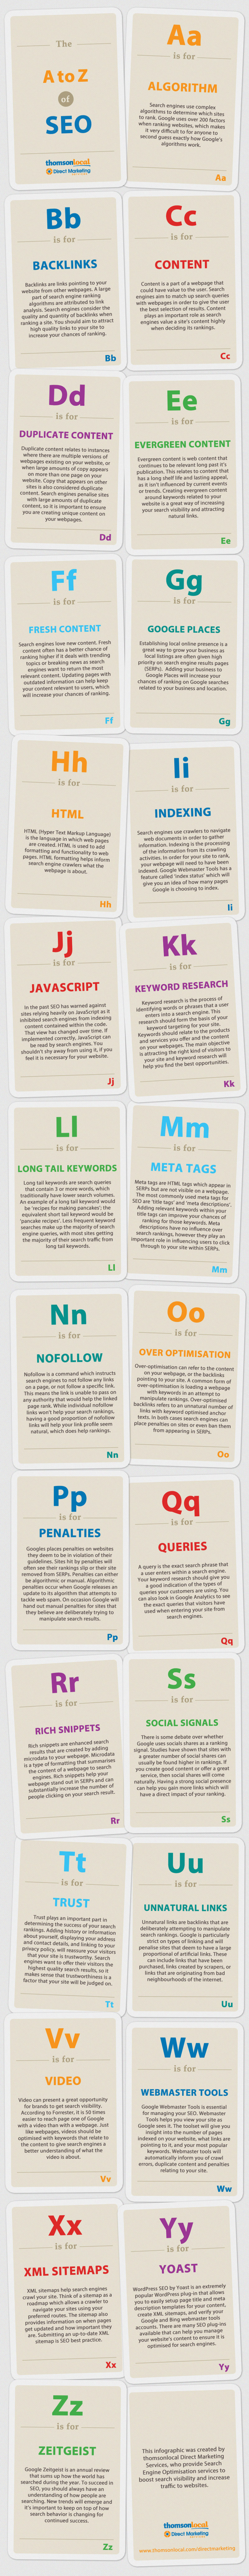 The A to Z of SEO Infographic